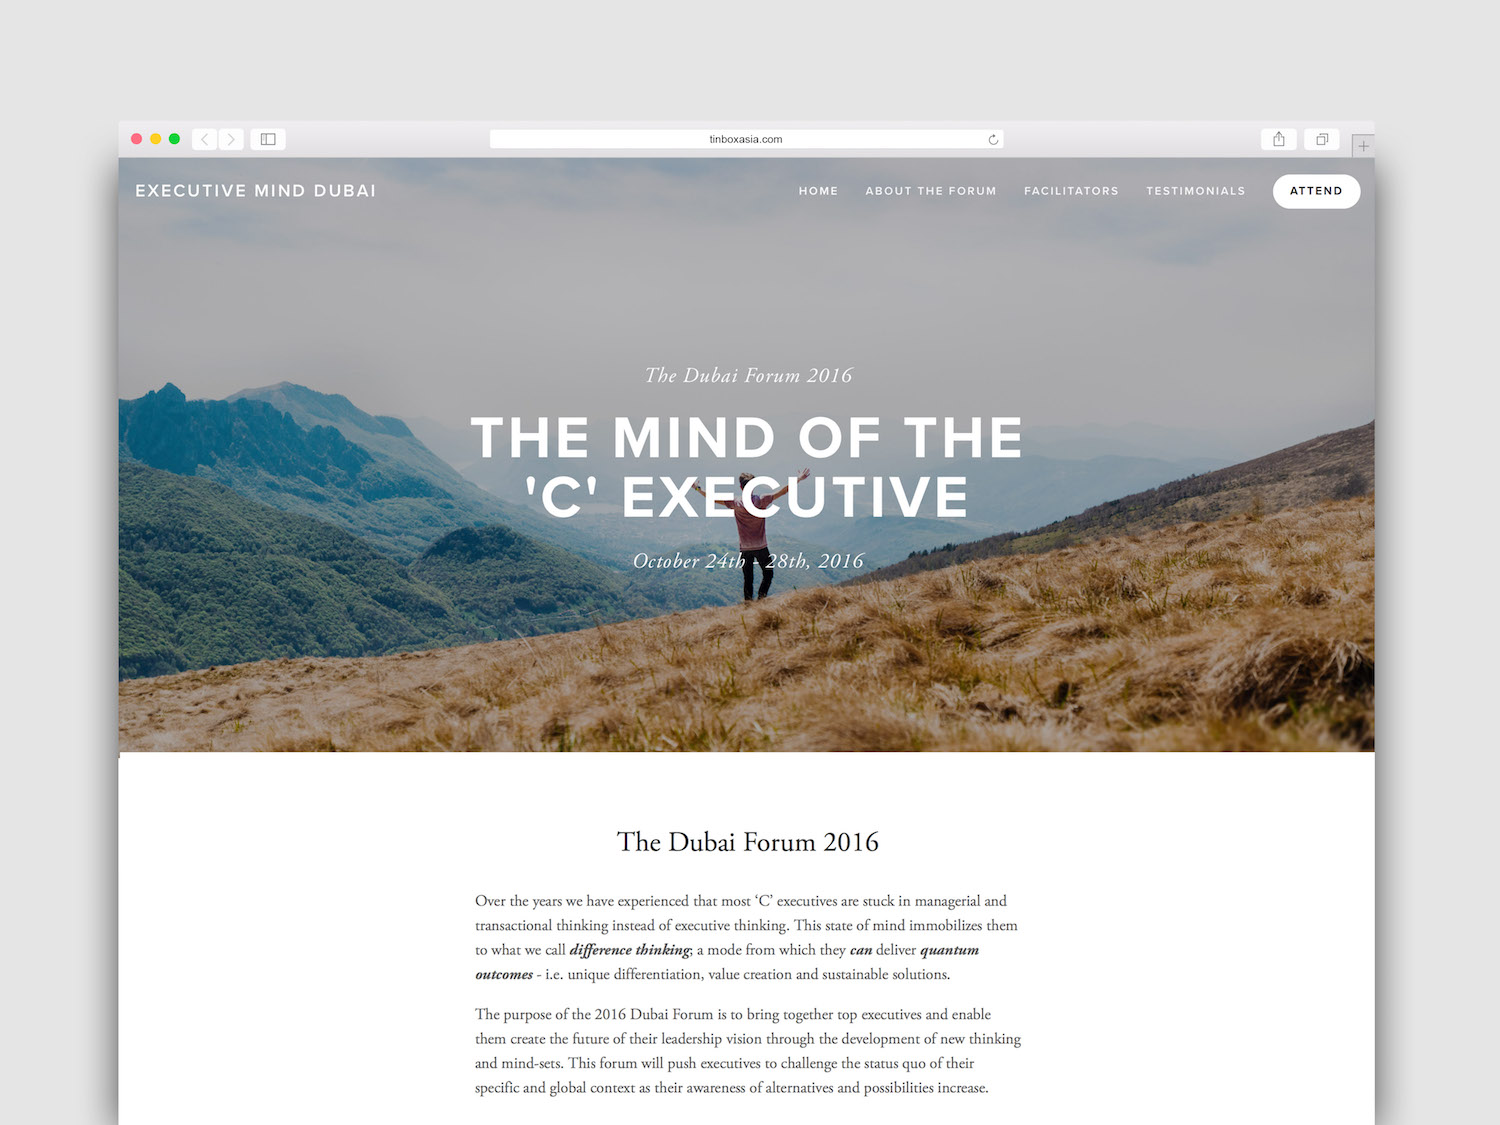 Executive Mind Dubai Safari PSD Mockup.jpg